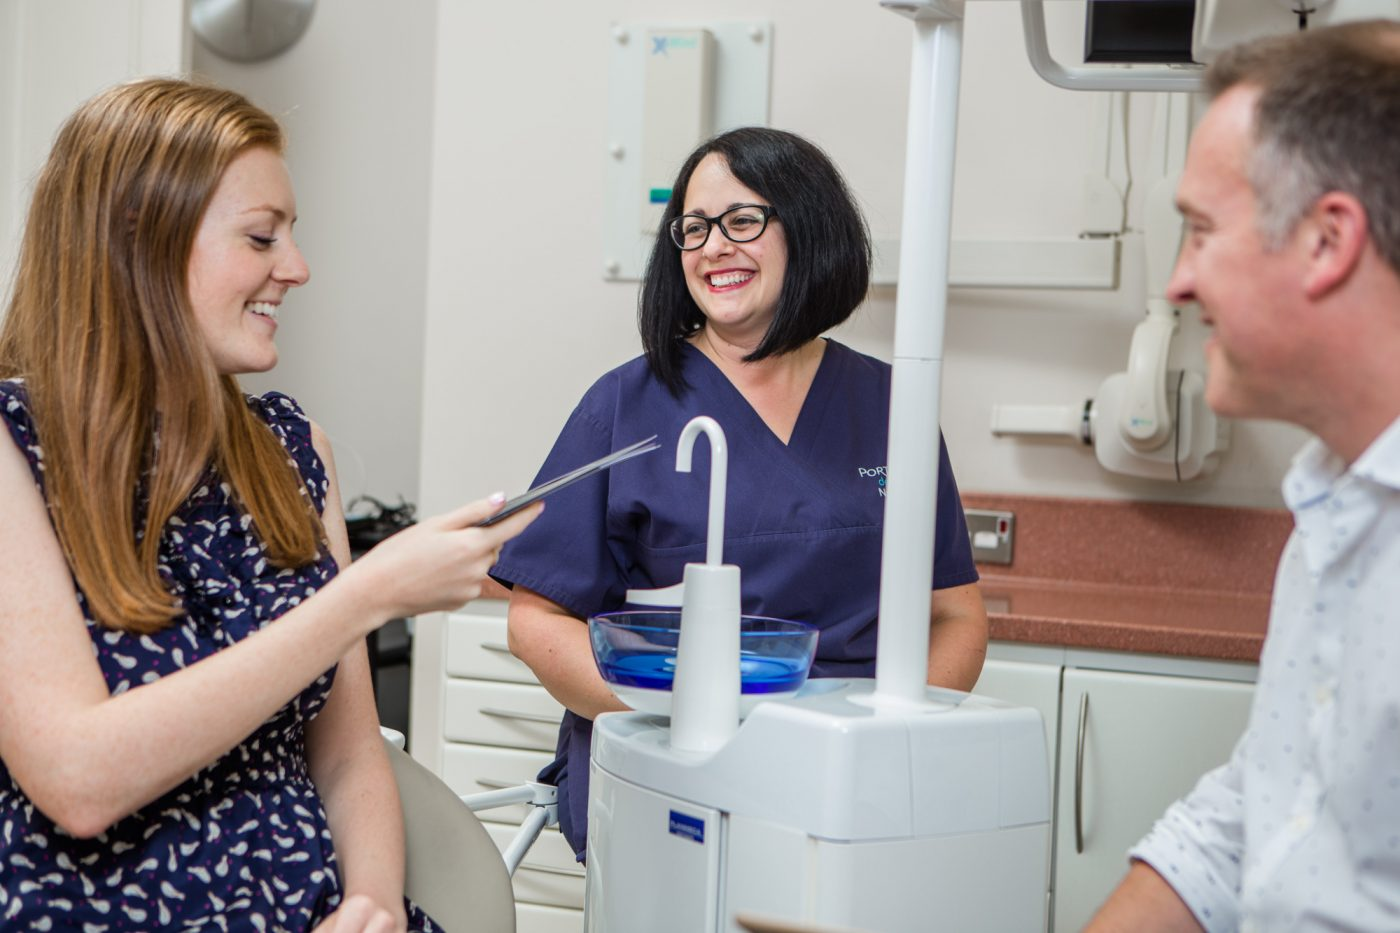 Oral Surgery Jones Dental Implant Clinic Rugby